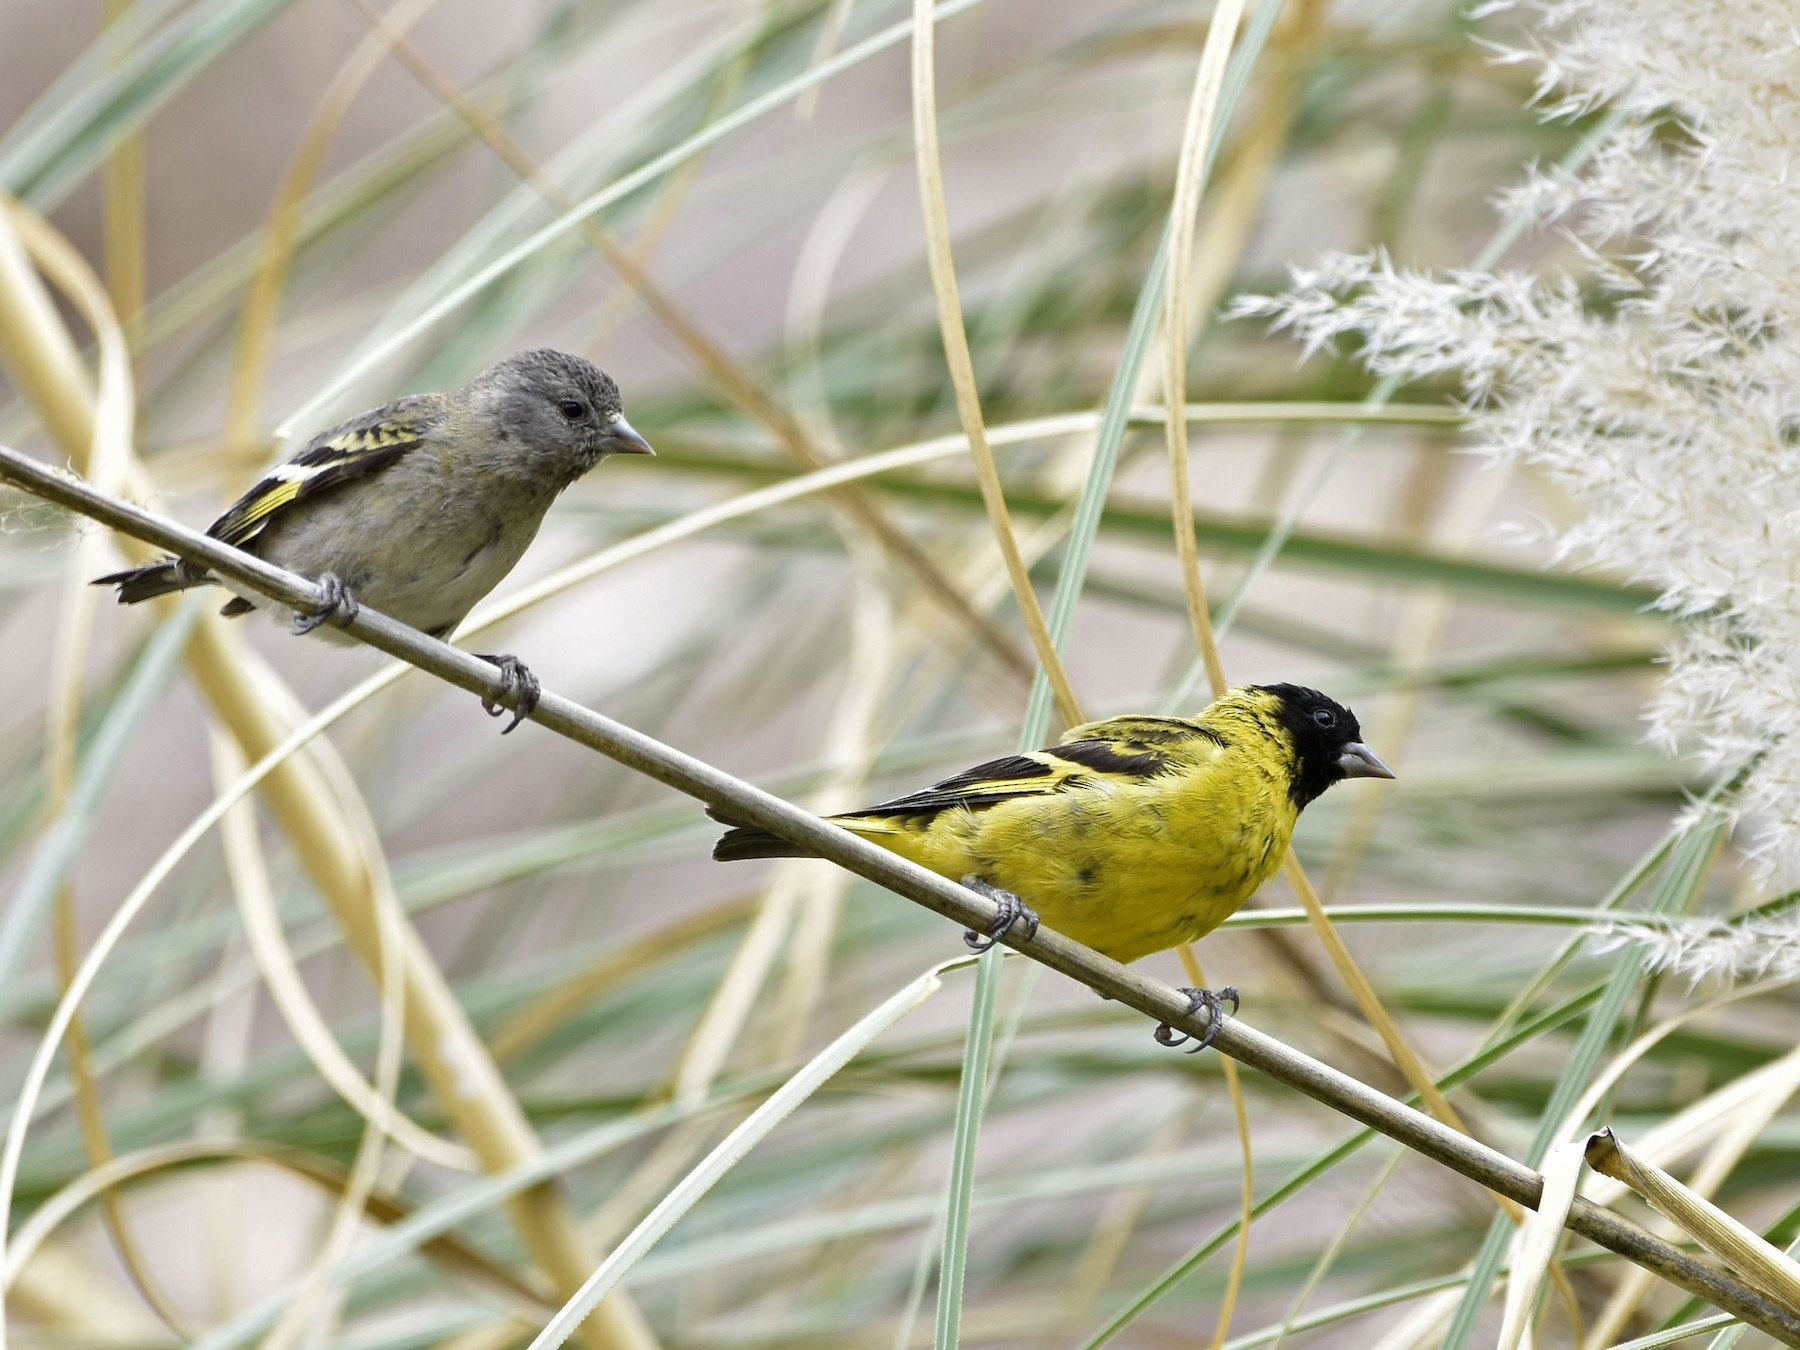 Hooded Siskin - VERONICA ARAYA GARCIA